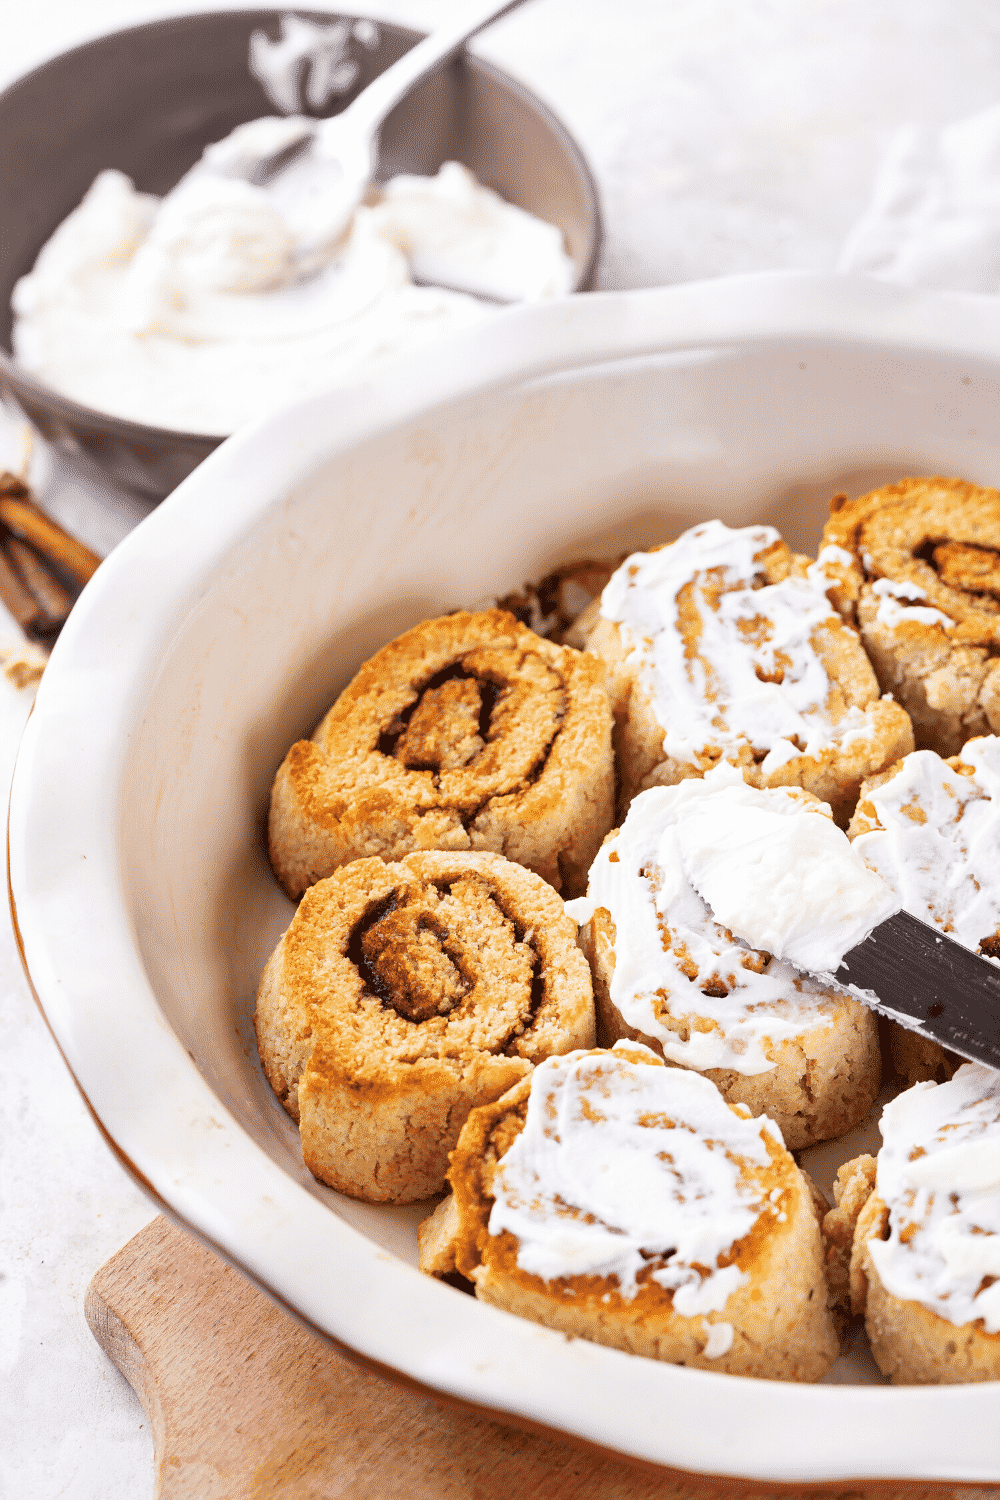 A white baking dish filled with two cinnamon rolls, three cinnamon rolls with icing on them, and then three more cinnamon rolls to the right of those.